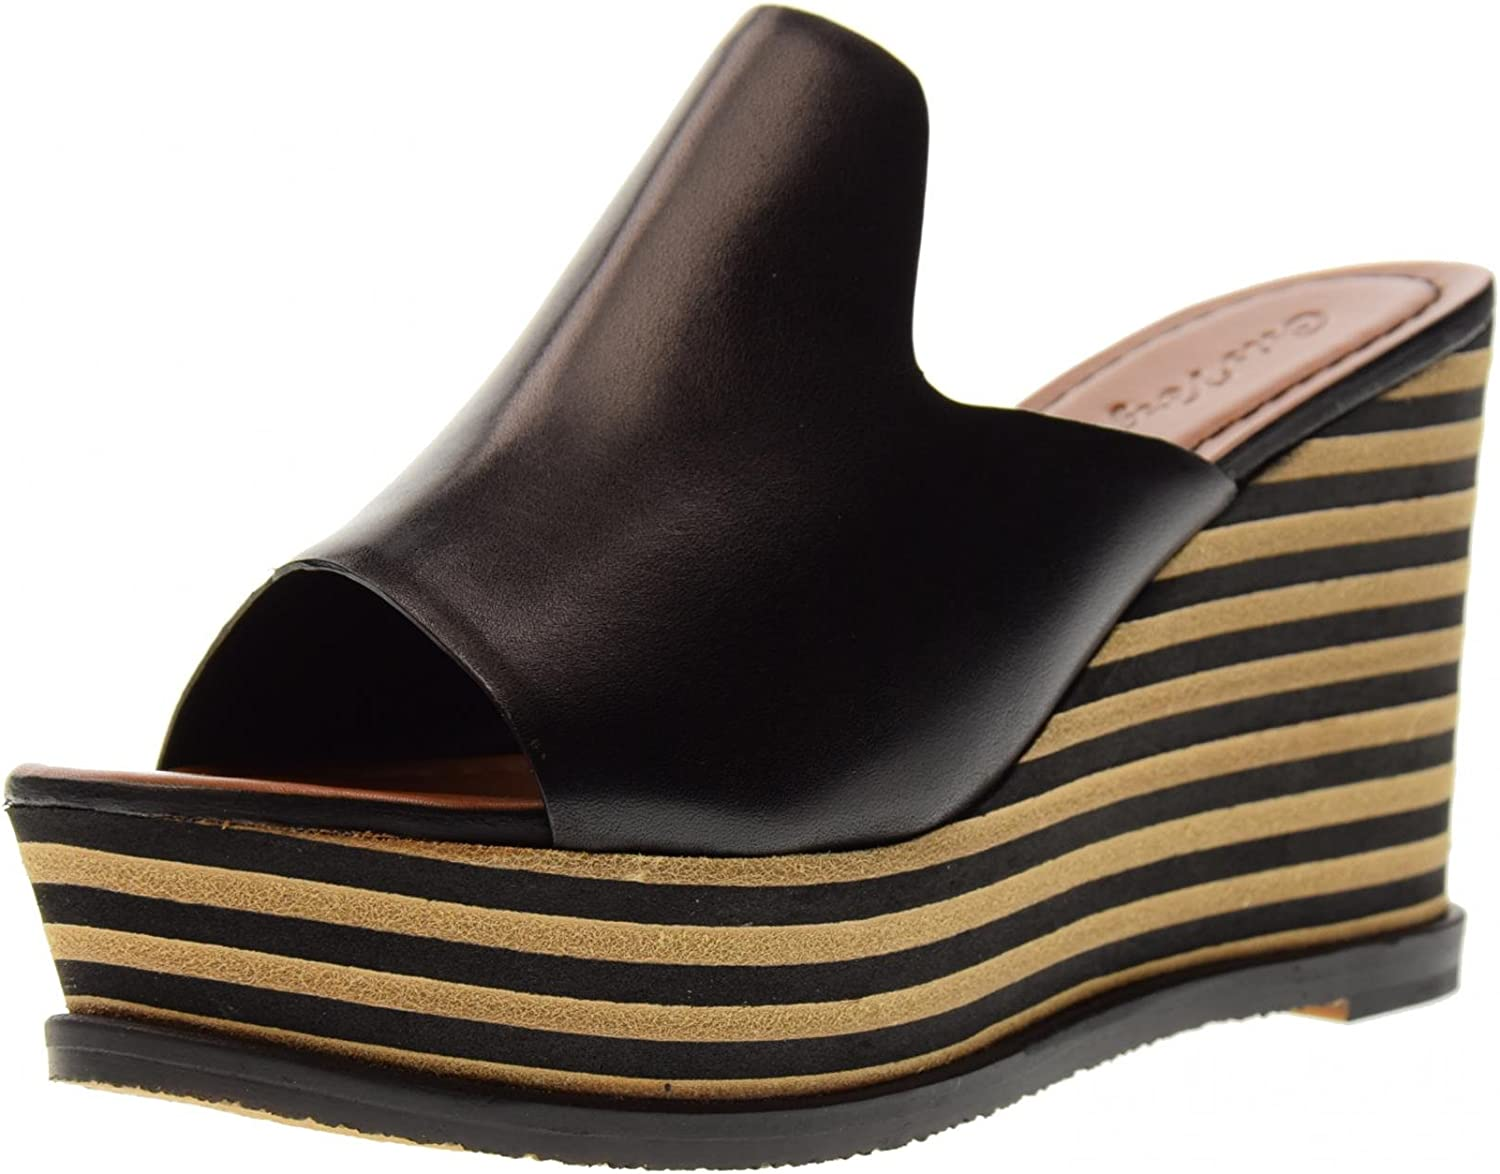 CRIS VERGRE' shoes Woman Slippers with Wedge H0201X Black